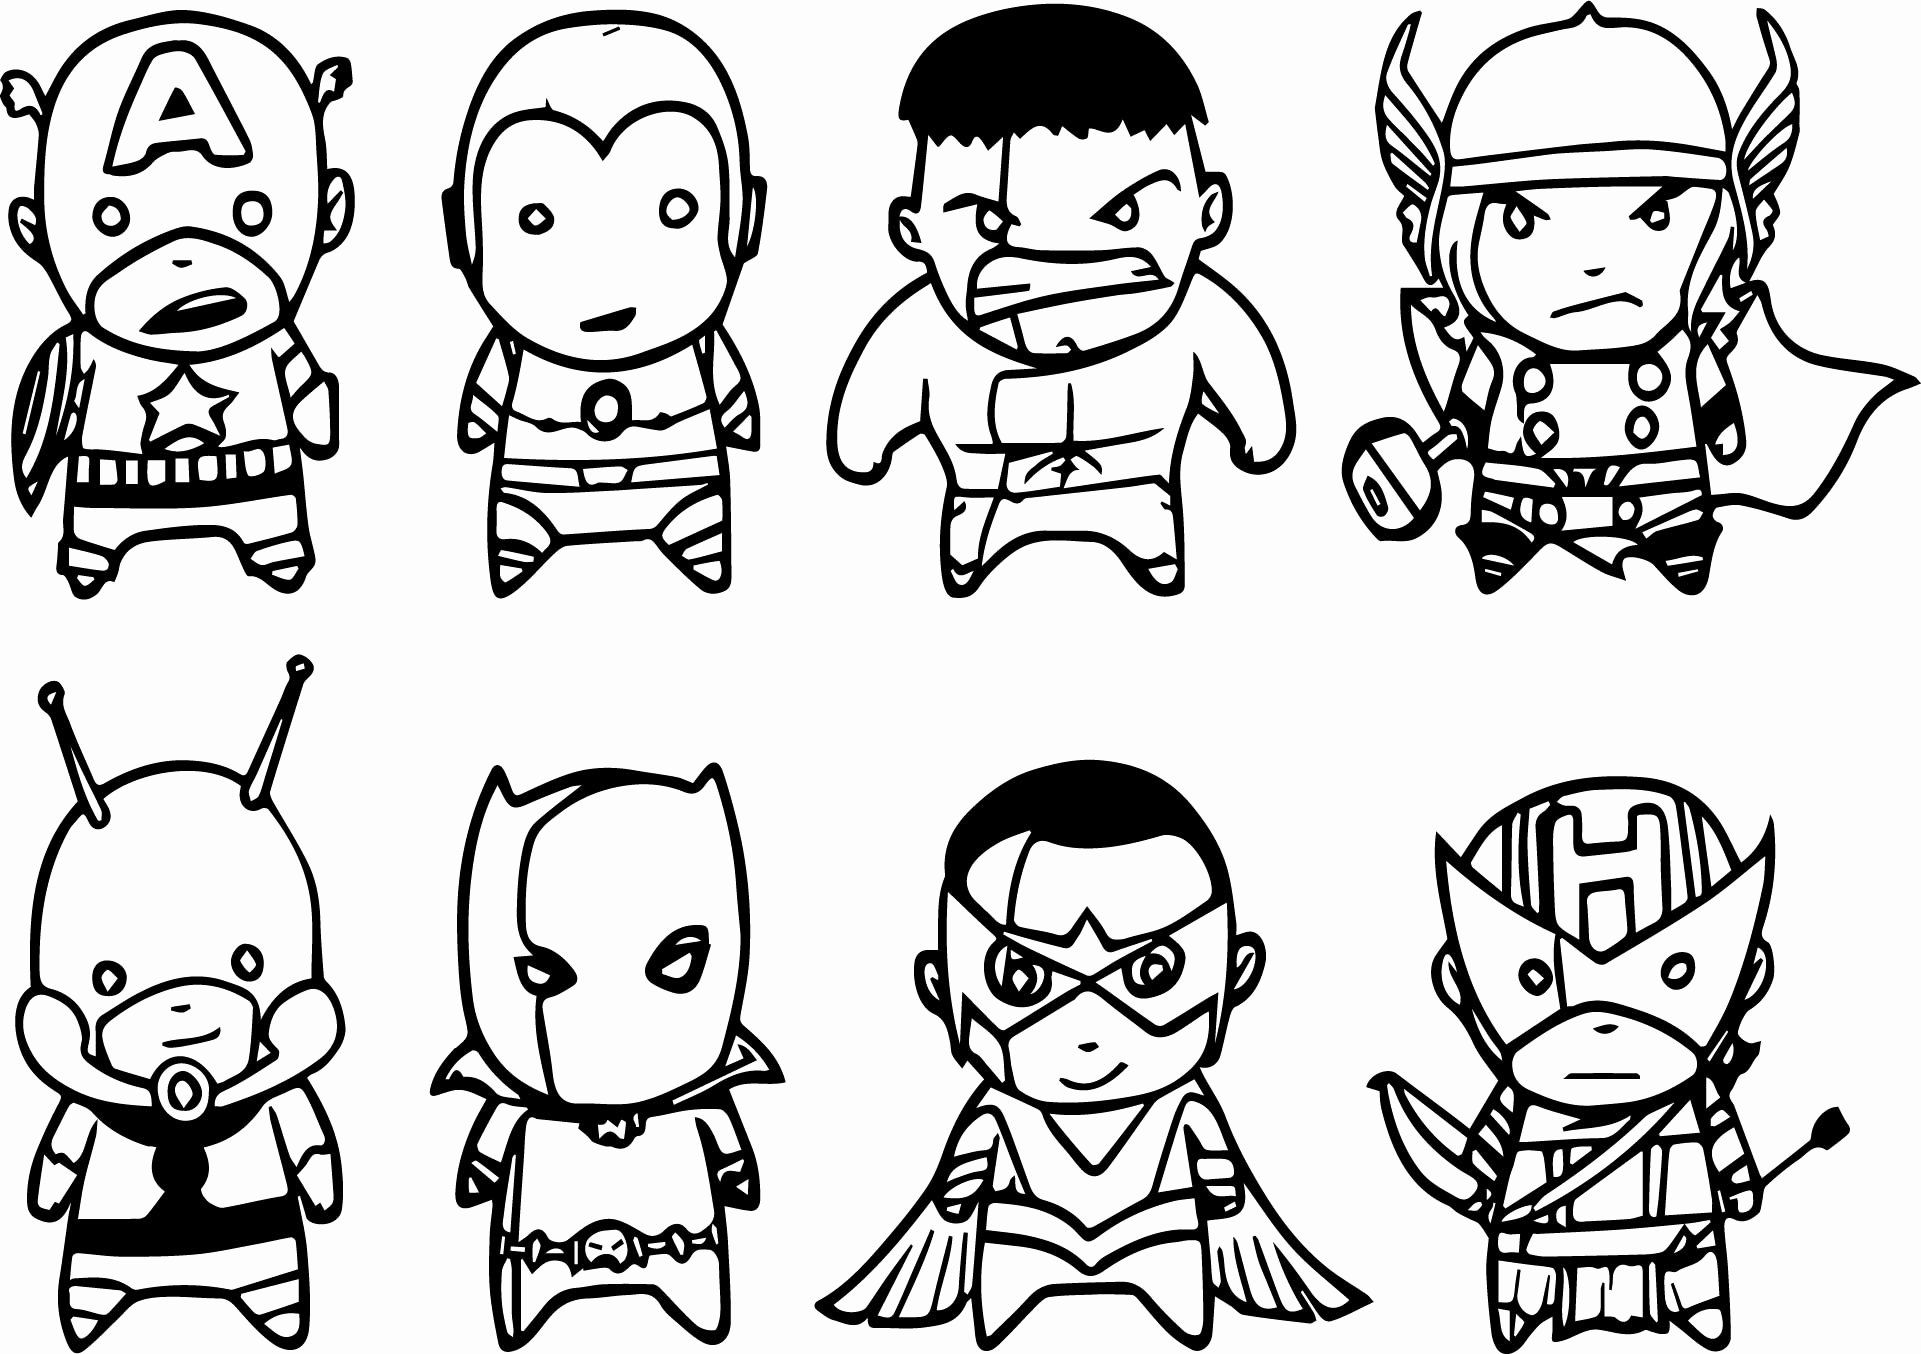 Avengers Printable Coloring Pages Luxury Avengers Coloring Pages Best Coloring Pages For Kids Avengers Coloring Pages Lego Coloring Pages Marvel Coloring